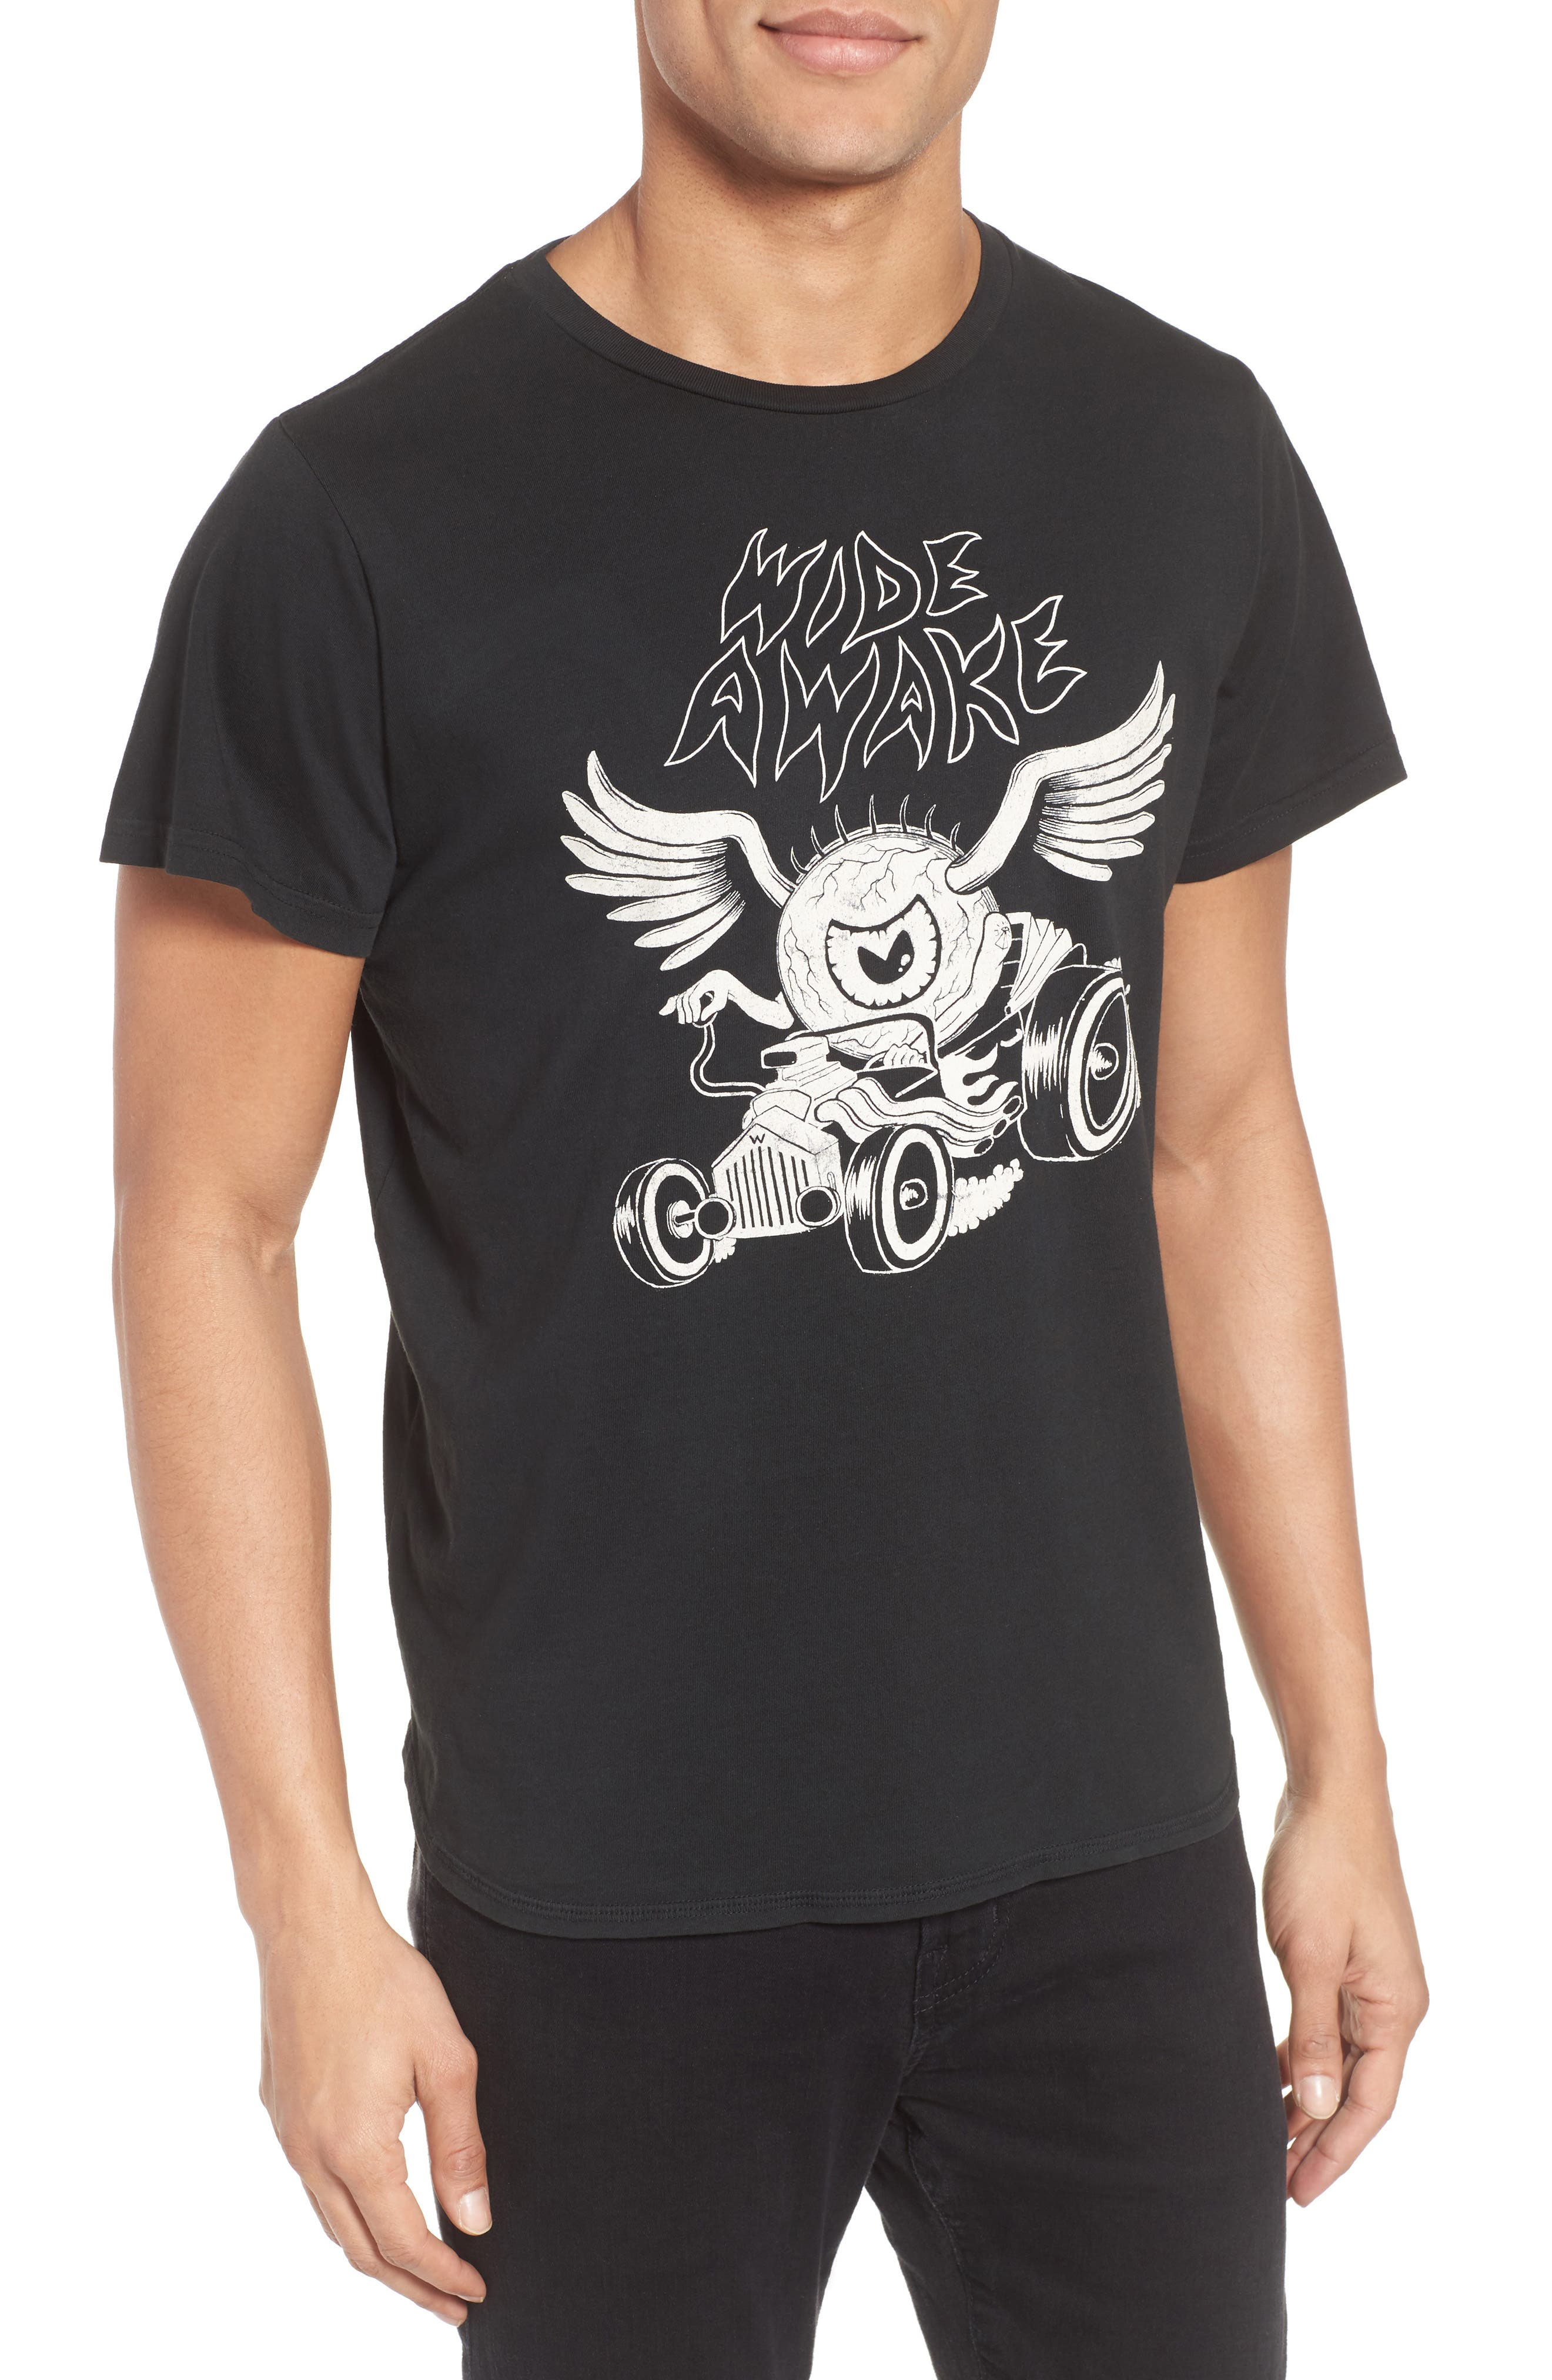 Wide Awake Graphic T-Shirt,                         Main,                         color, DUSTY BLACK